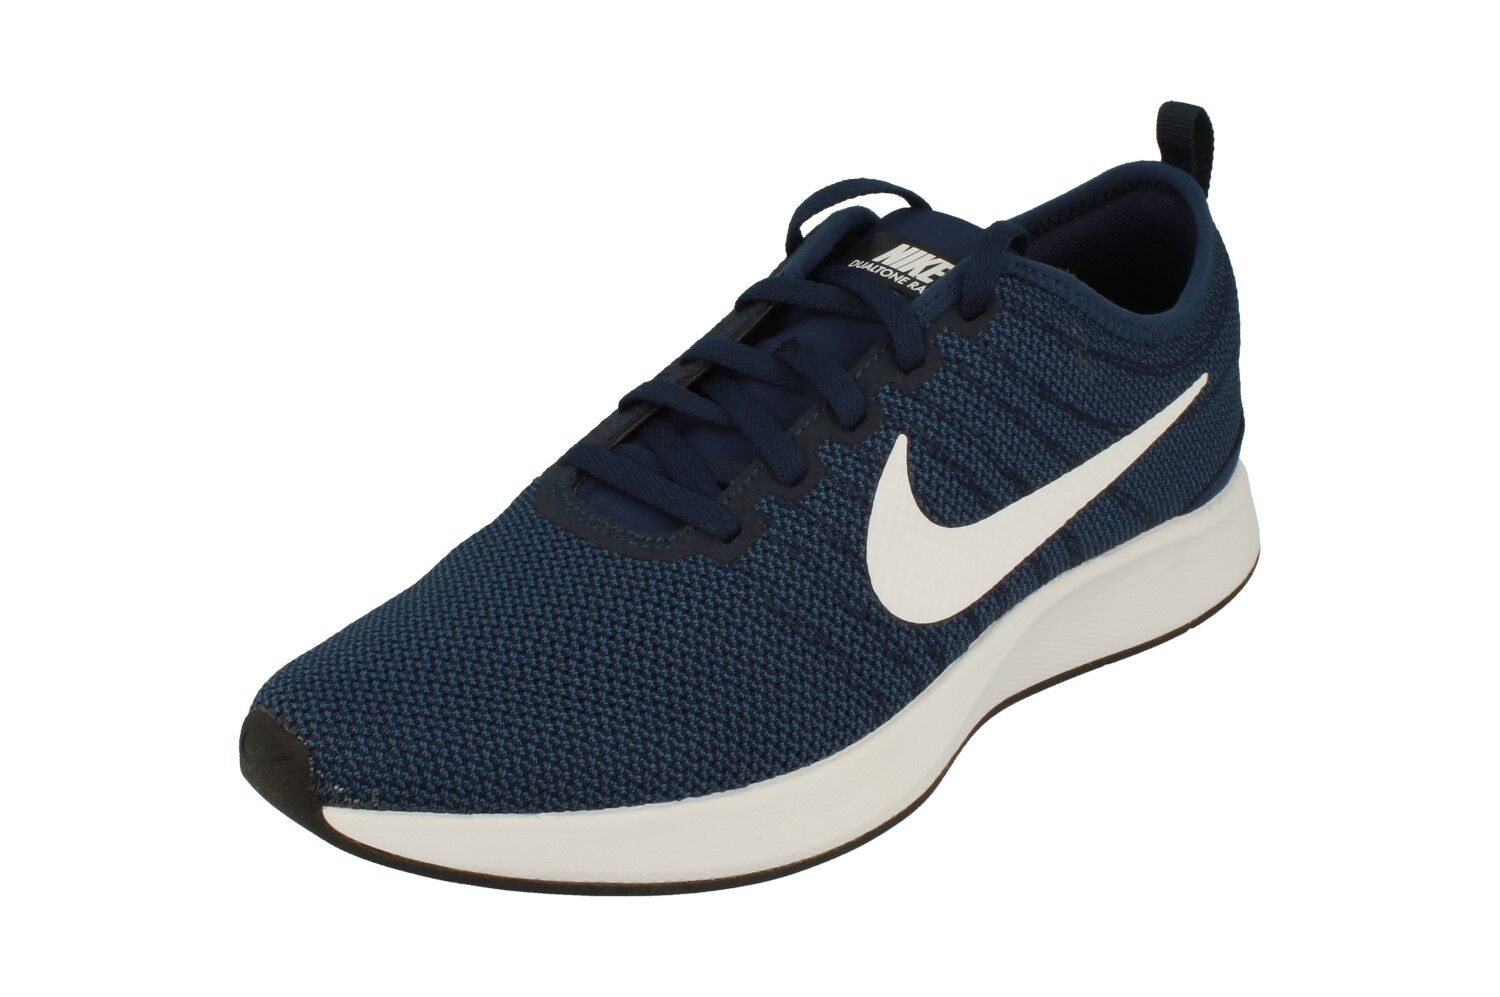 Nike Dualtone Racer Mens Running Trainers 918227 Sneakers Shoes 400